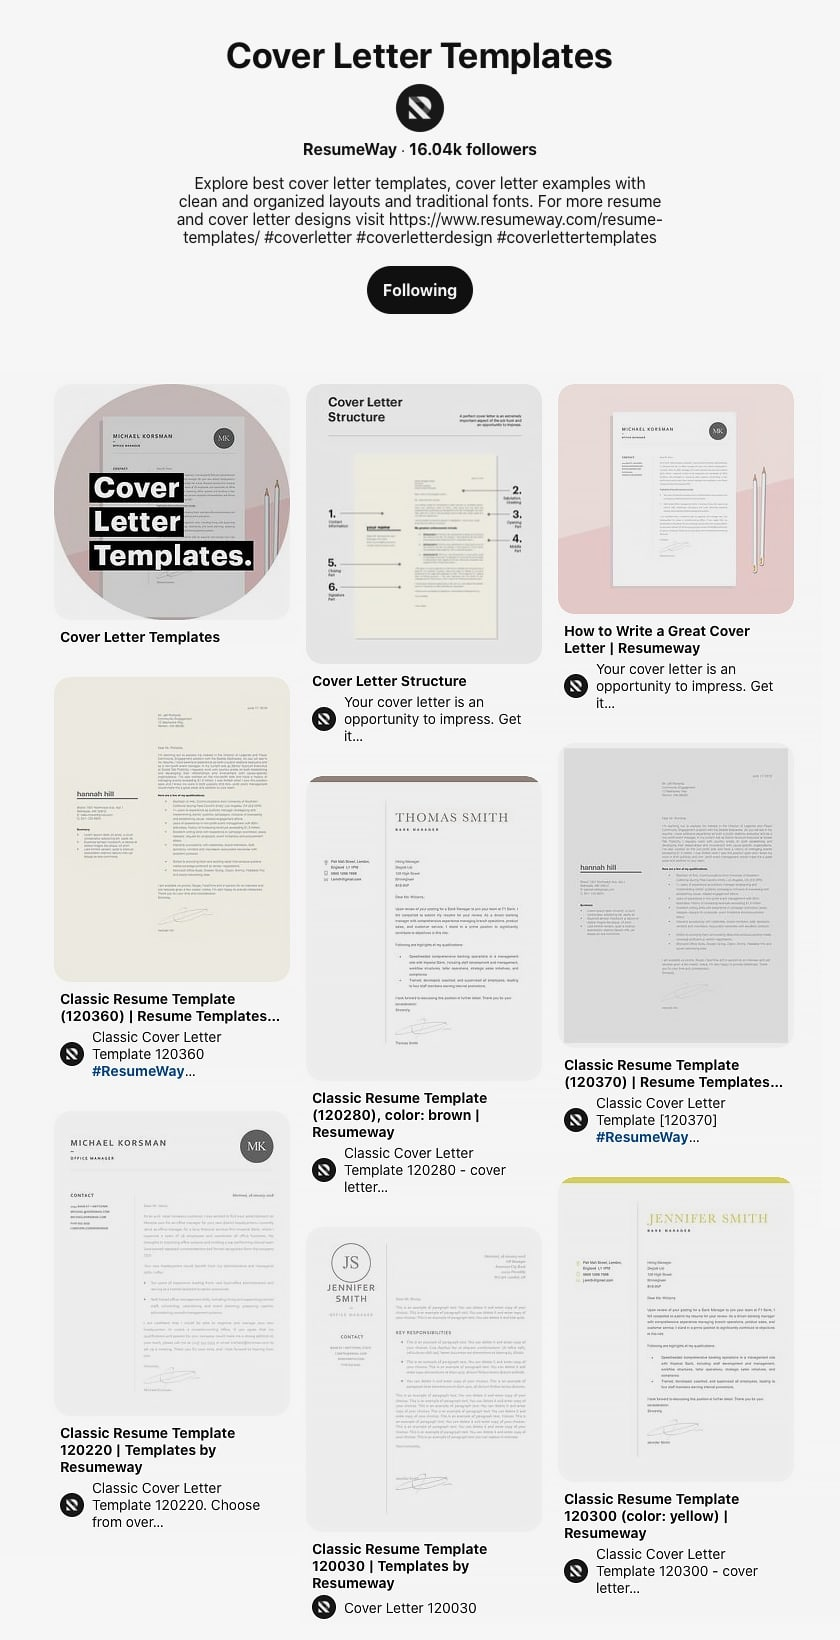 Cover Leter Templates